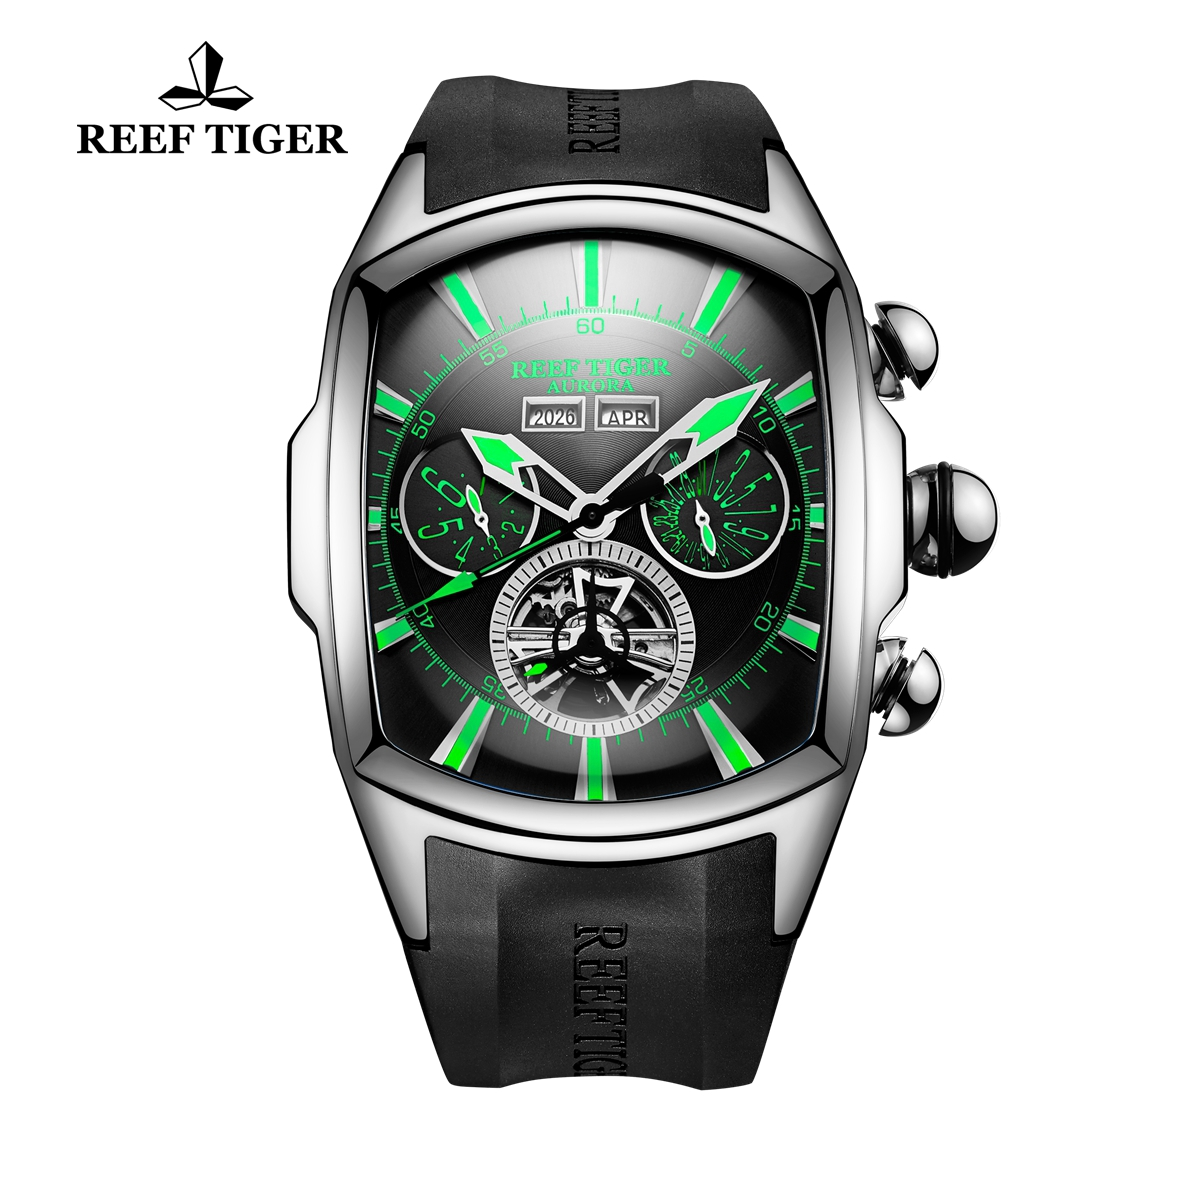 Reef Tiger Automatic Sport Watches Stainless Steel Case Black Dial Rubber Strap Watches RGA3069-YBBN